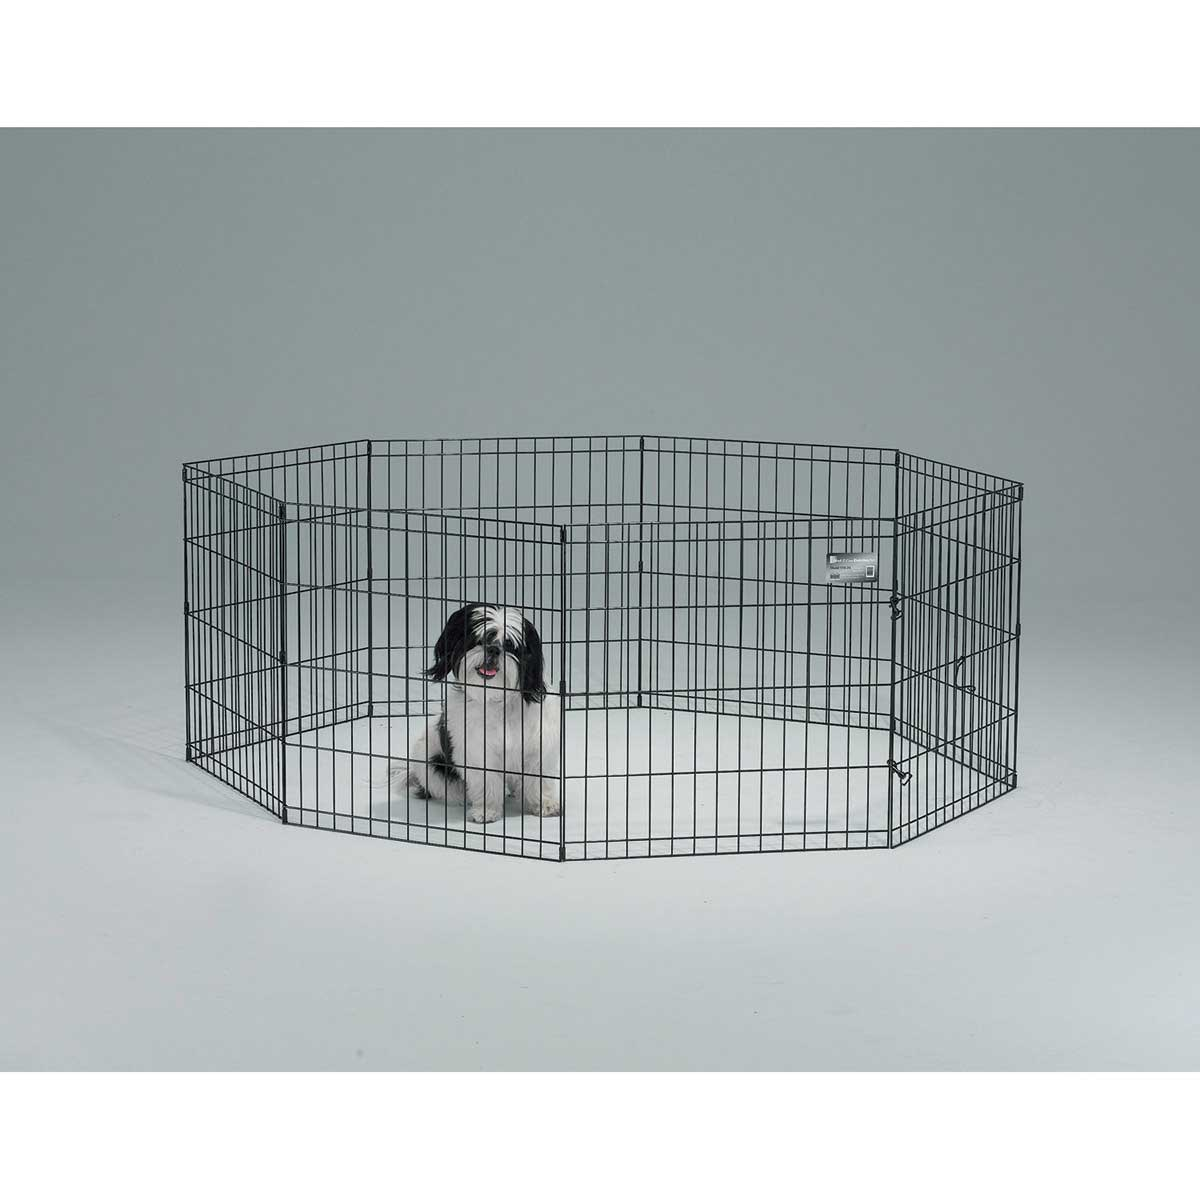 Midwest Exercise Pen Black Finish - 48 inch High - 8 Panels Without Door